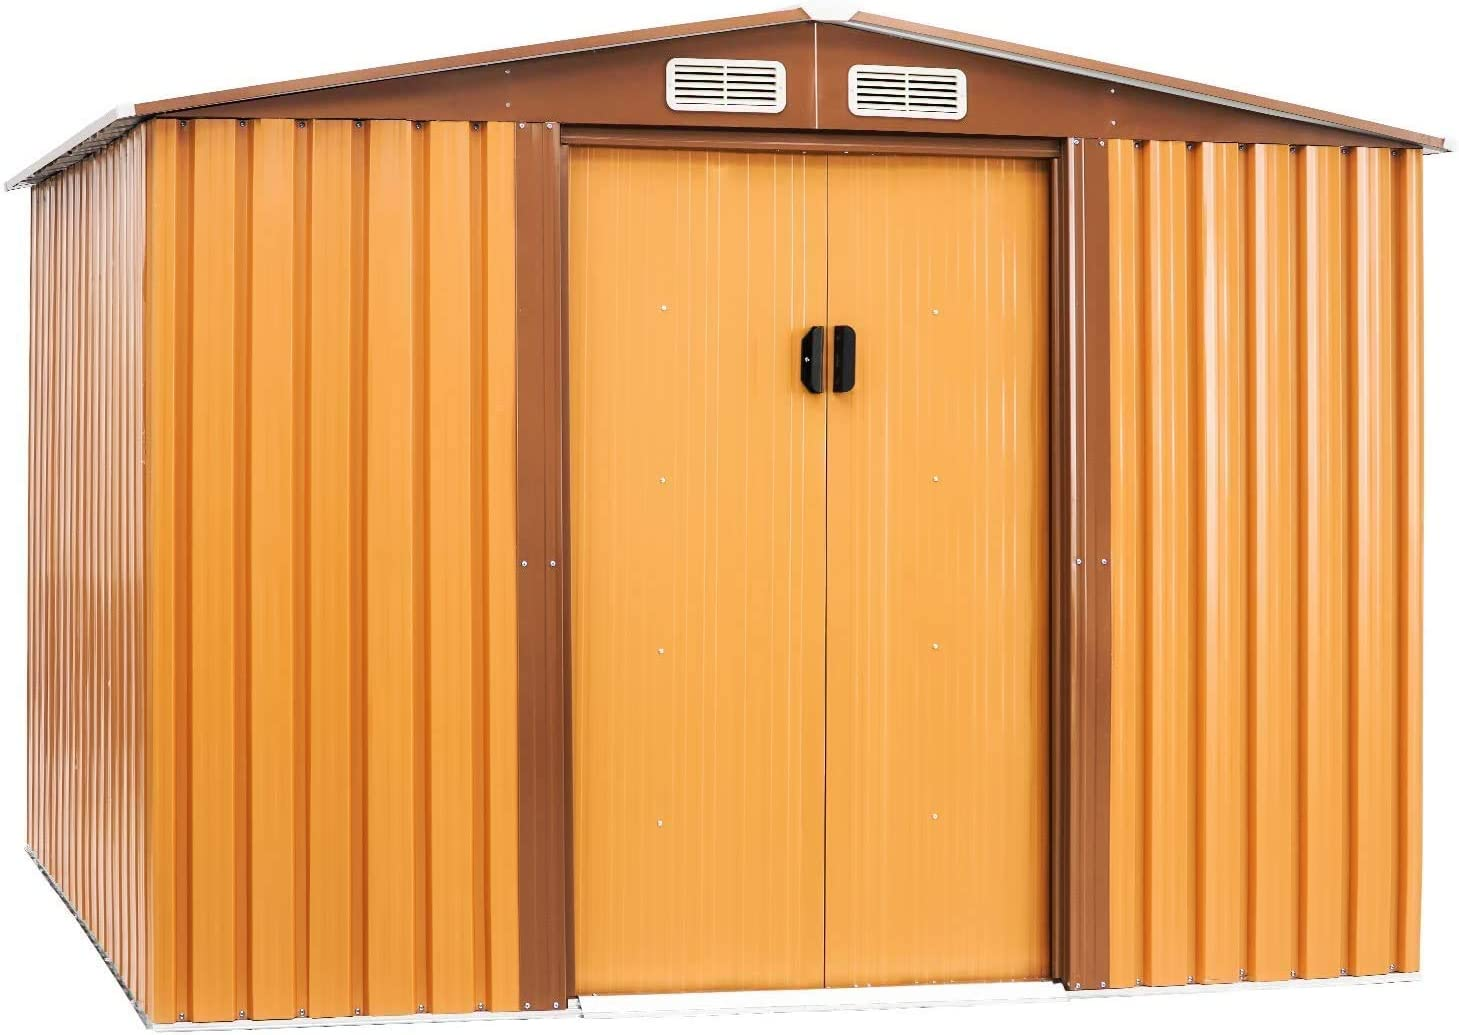 Amazon Com Crownland Backyard Garden Storage Shed 6 X 8 Feet Tool House With Sliding Door Outdoor Lawn Steel Roof Style Sheds Yellow Home Improvement